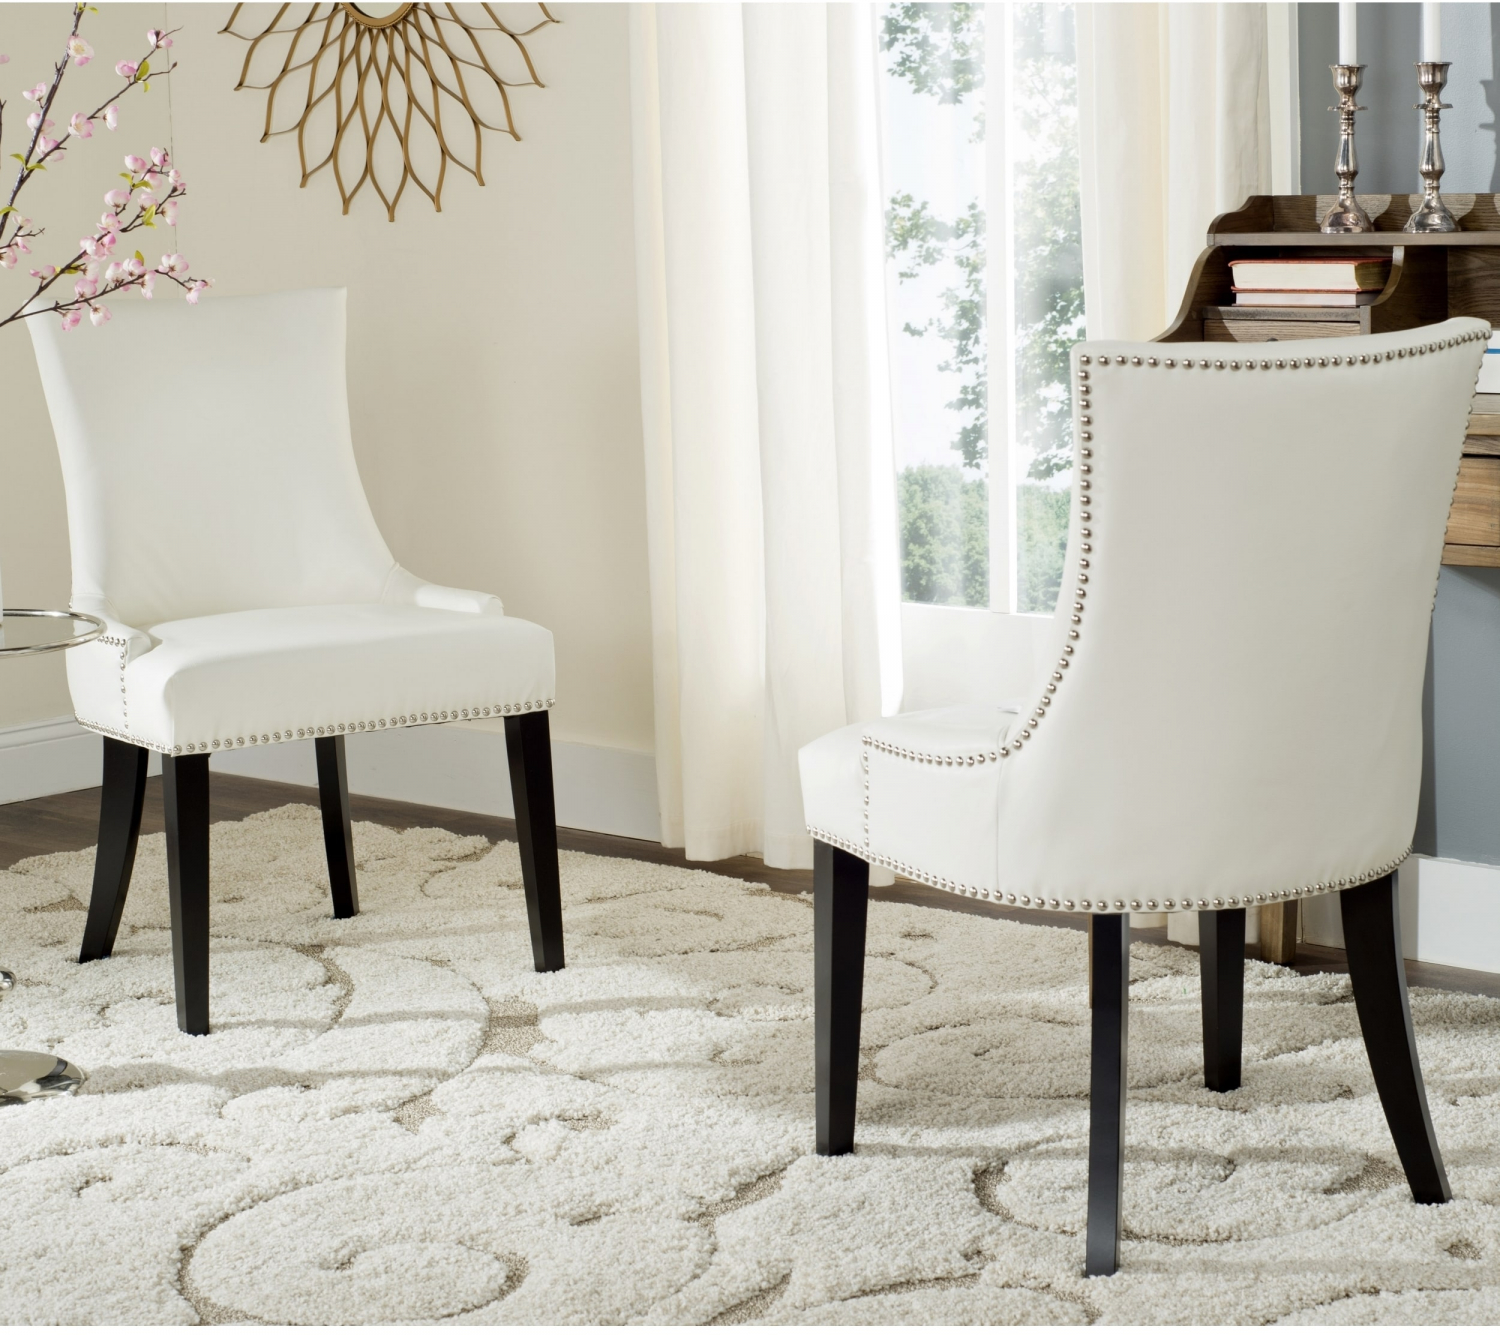 Details About Dining Chairs Bicast Leather Stained Birchwood Legs Nail Head Trim White 2 Pack